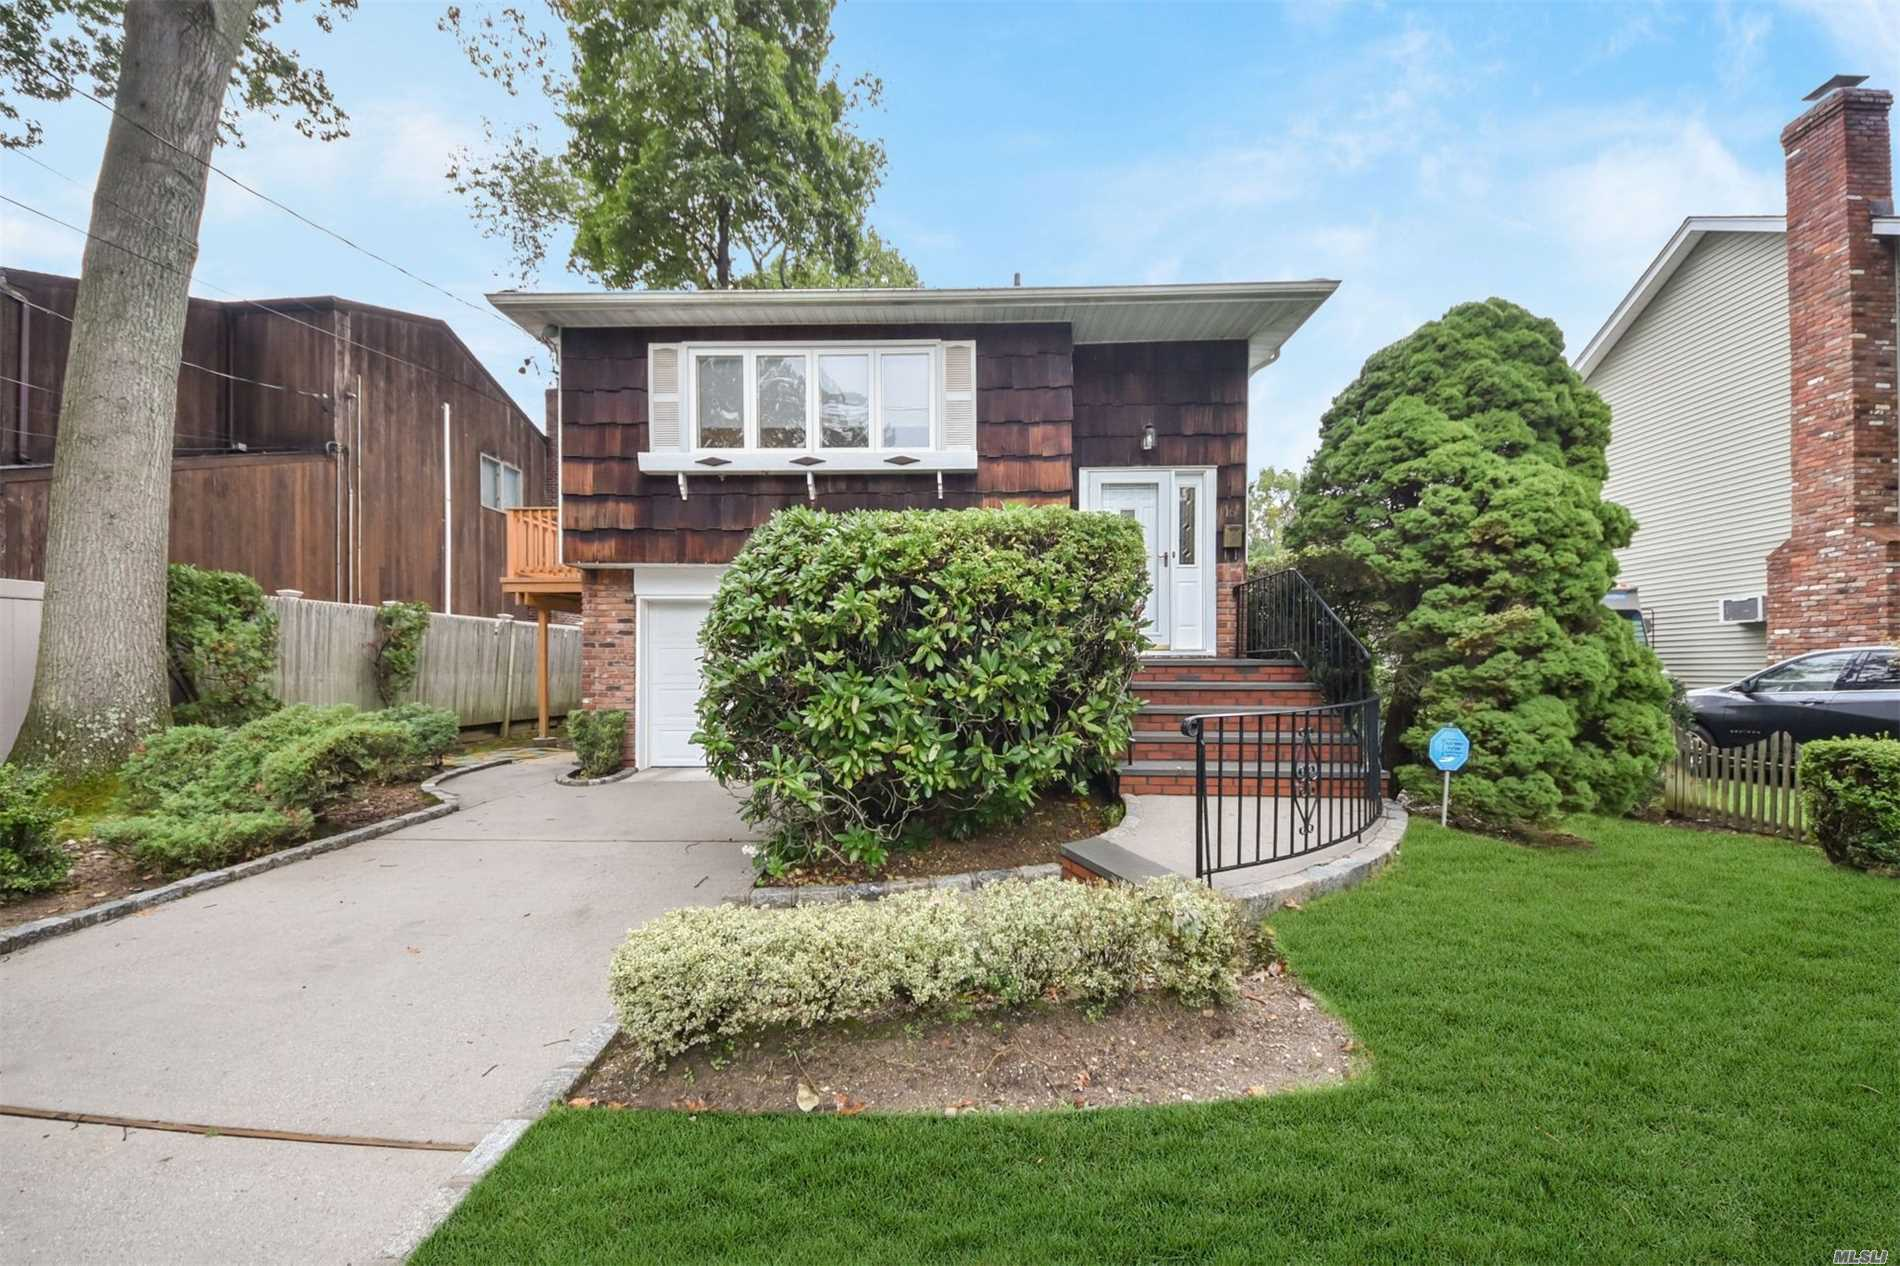 This Home In Perfect Mid Block Loc.On Prof.Landscaped Property In The Manetto Hills Area Features Updated Eik, 5 Yr Old Arch.Roof, 2 Yr Old Cac, Upper Level Only, 3 Yr Old Deck, Hardwood Floors. Taxes With * $9021.Parkway Elem., Mattlin Middle School And Jfk Hs.Convenient To All. Gas Line Very Close To Home!!Professional Photos To Be Up Shortly.